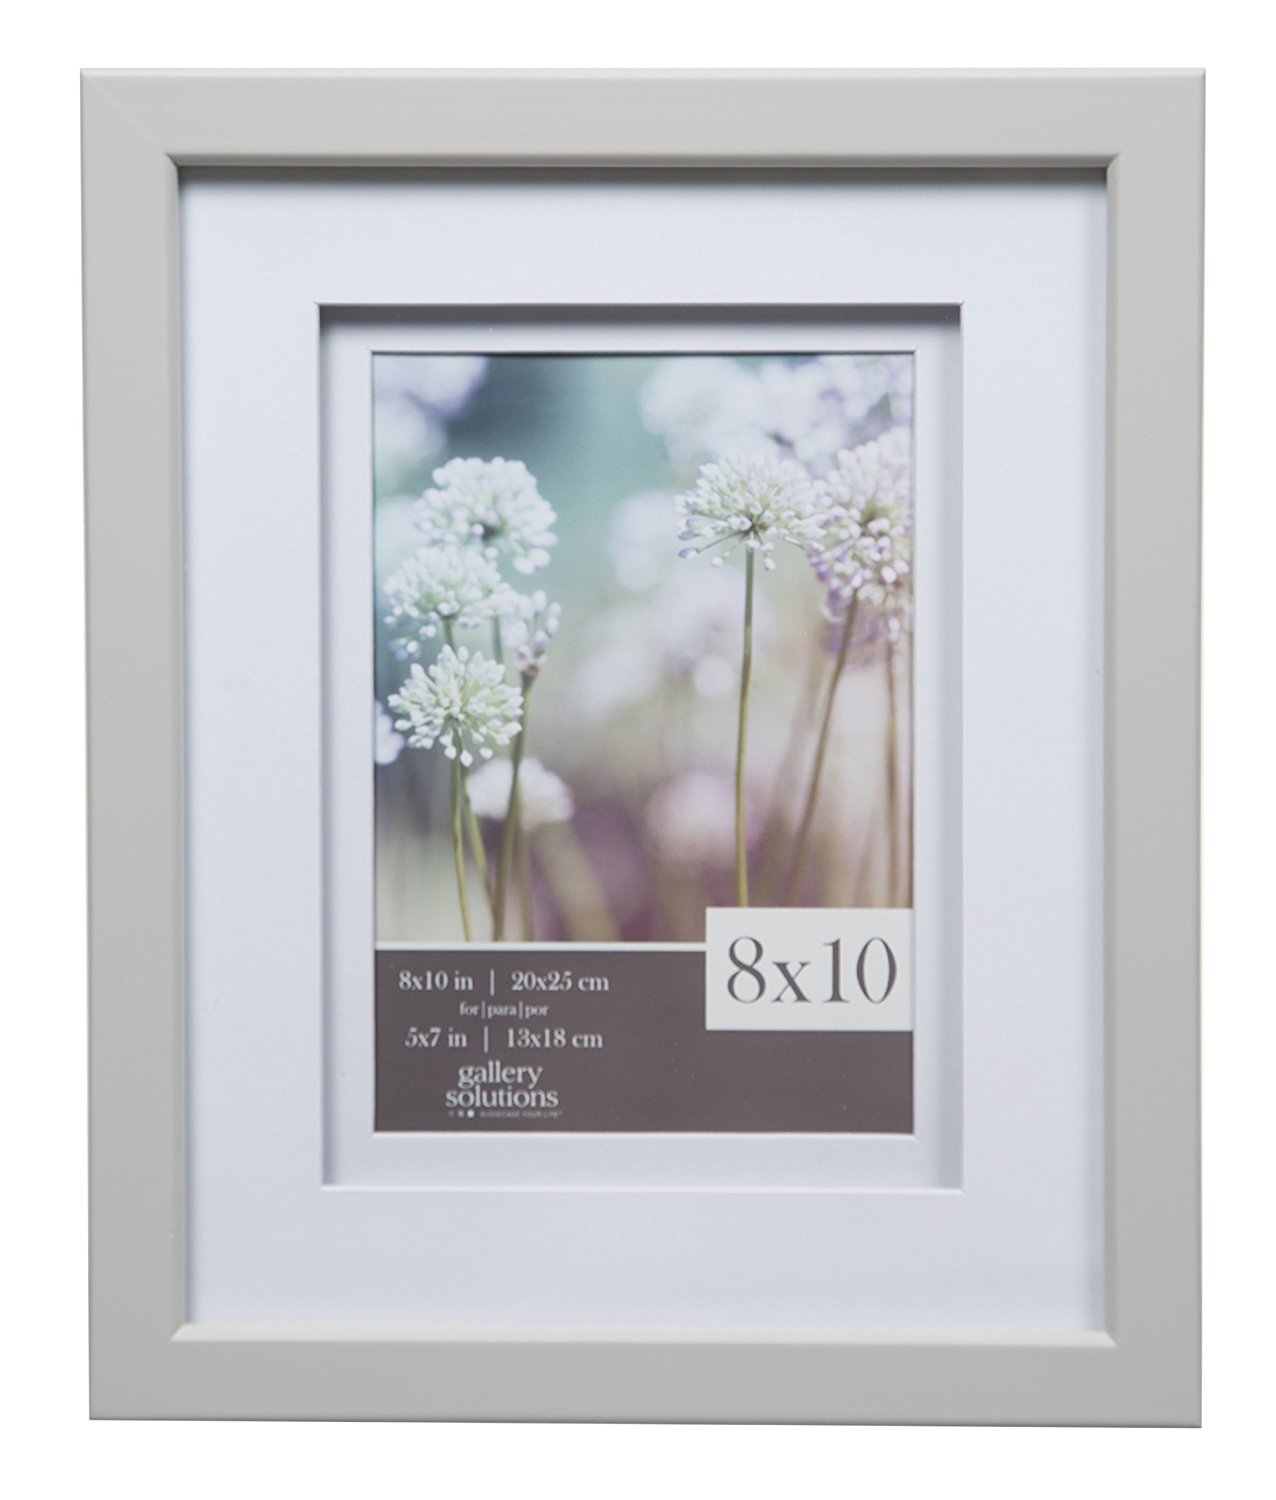 Amazon.com: Gallery Solutions 8x10 Light Grey Wood Frame with Double ...